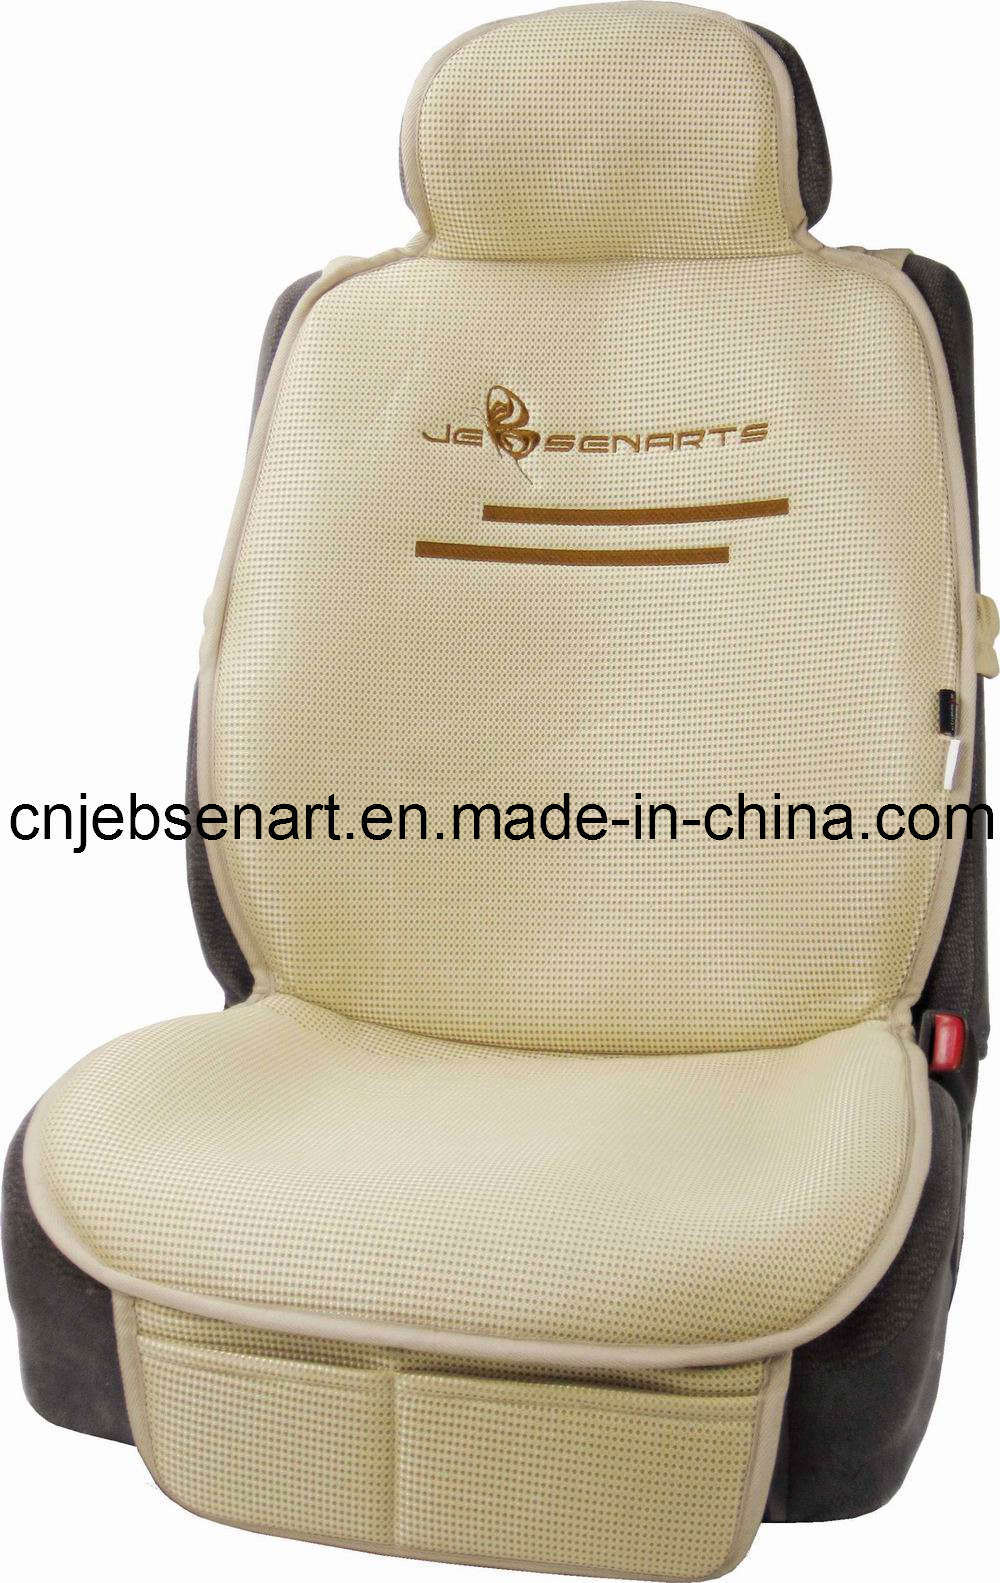 china polyester car seat cushion zd003c1 china seat cushion car seat cushion. Black Bedroom Furniture Sets. Home Design Ideas